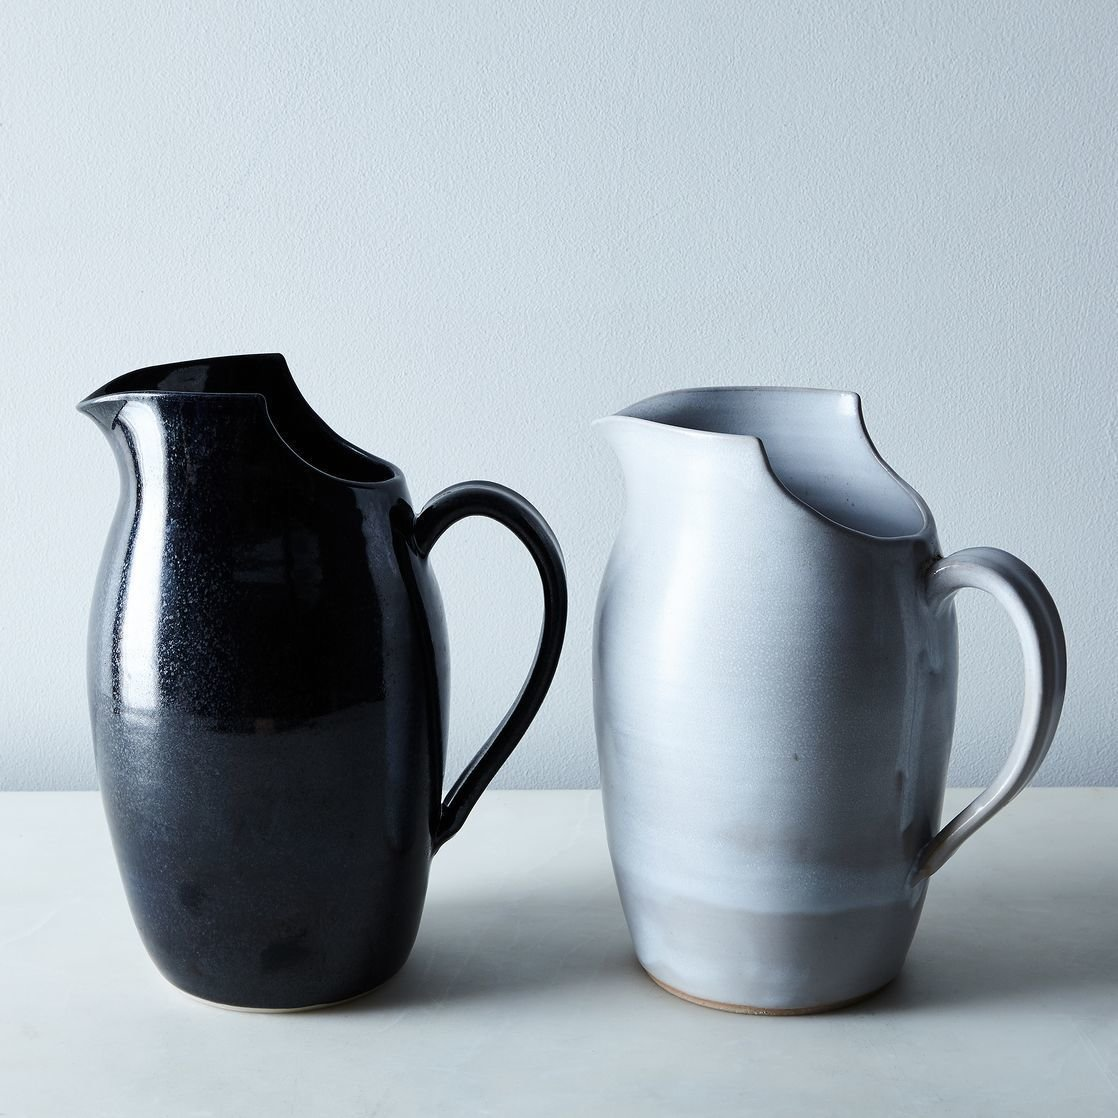 Photo 1 of 1 in Large Cut Rimmed Pitcher